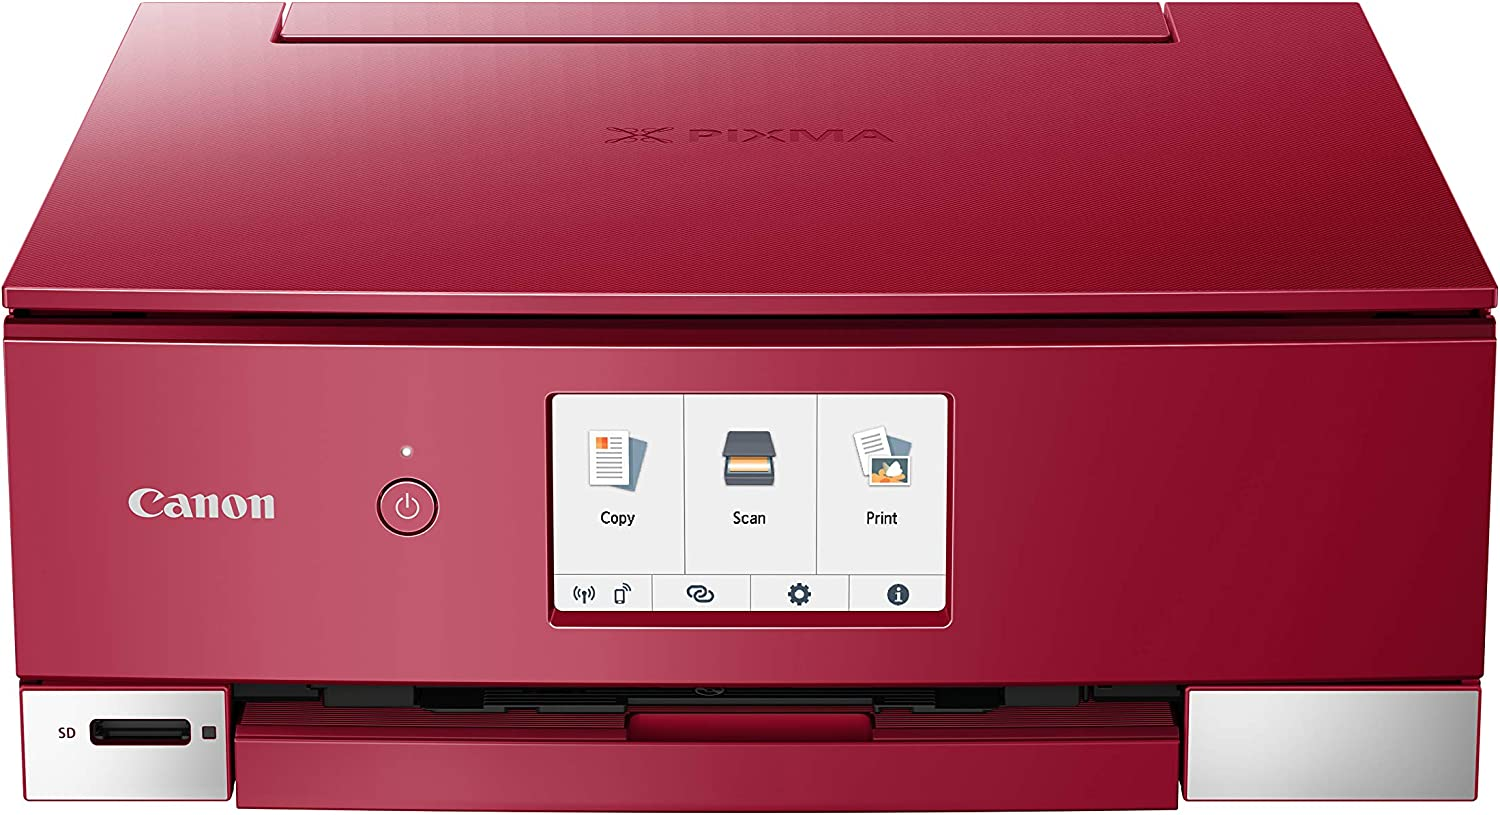 Canon PIXMA TS8320 Inkjet Wireless Color Printer All In One, Copier, Scanner, Red, Amazon Dash Replenishment Ready, Model:3775C042